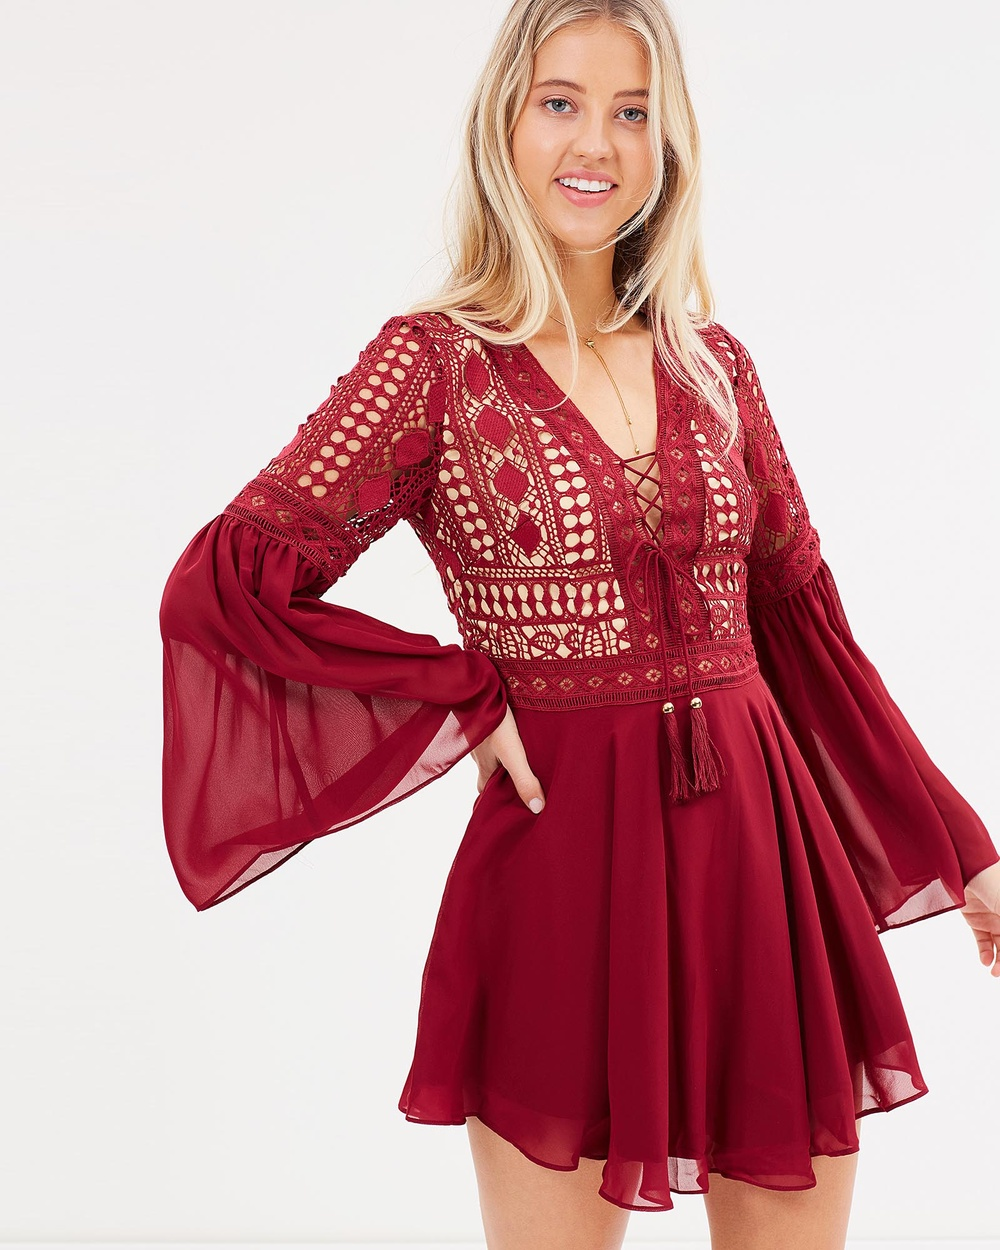 Twosister's The Label Alyse Dress Dresses Red Alyse Dress